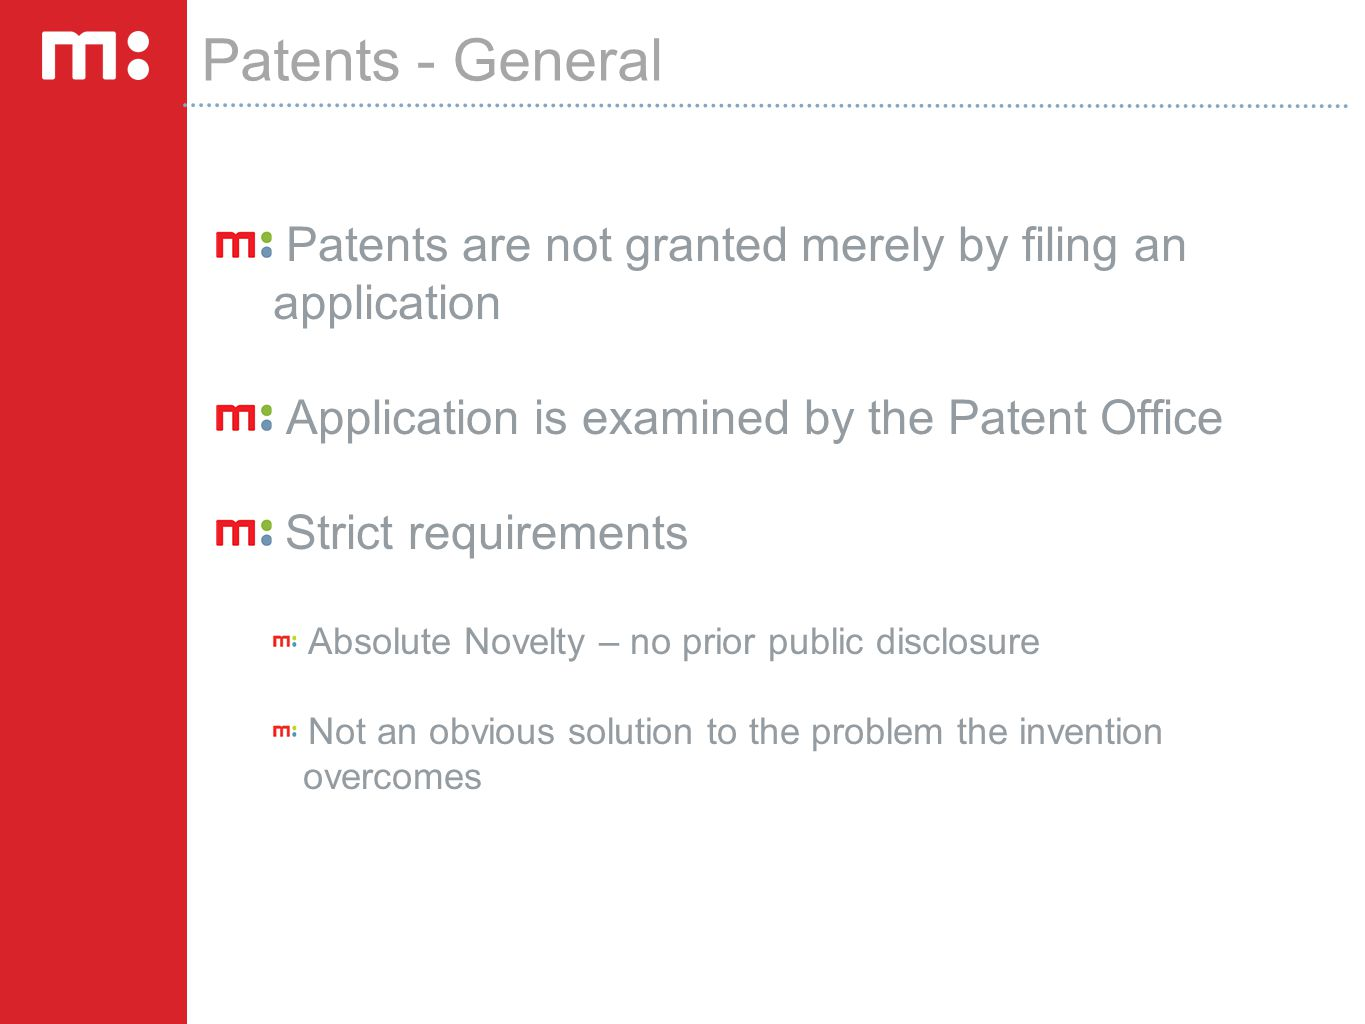 Patents - General Patents are not granted merely by filing an application Application is examined by the Patent Office Strict requirements Absolute Novelty – no prior public disclosure Not an obvious solution to the problem the invention overcomes